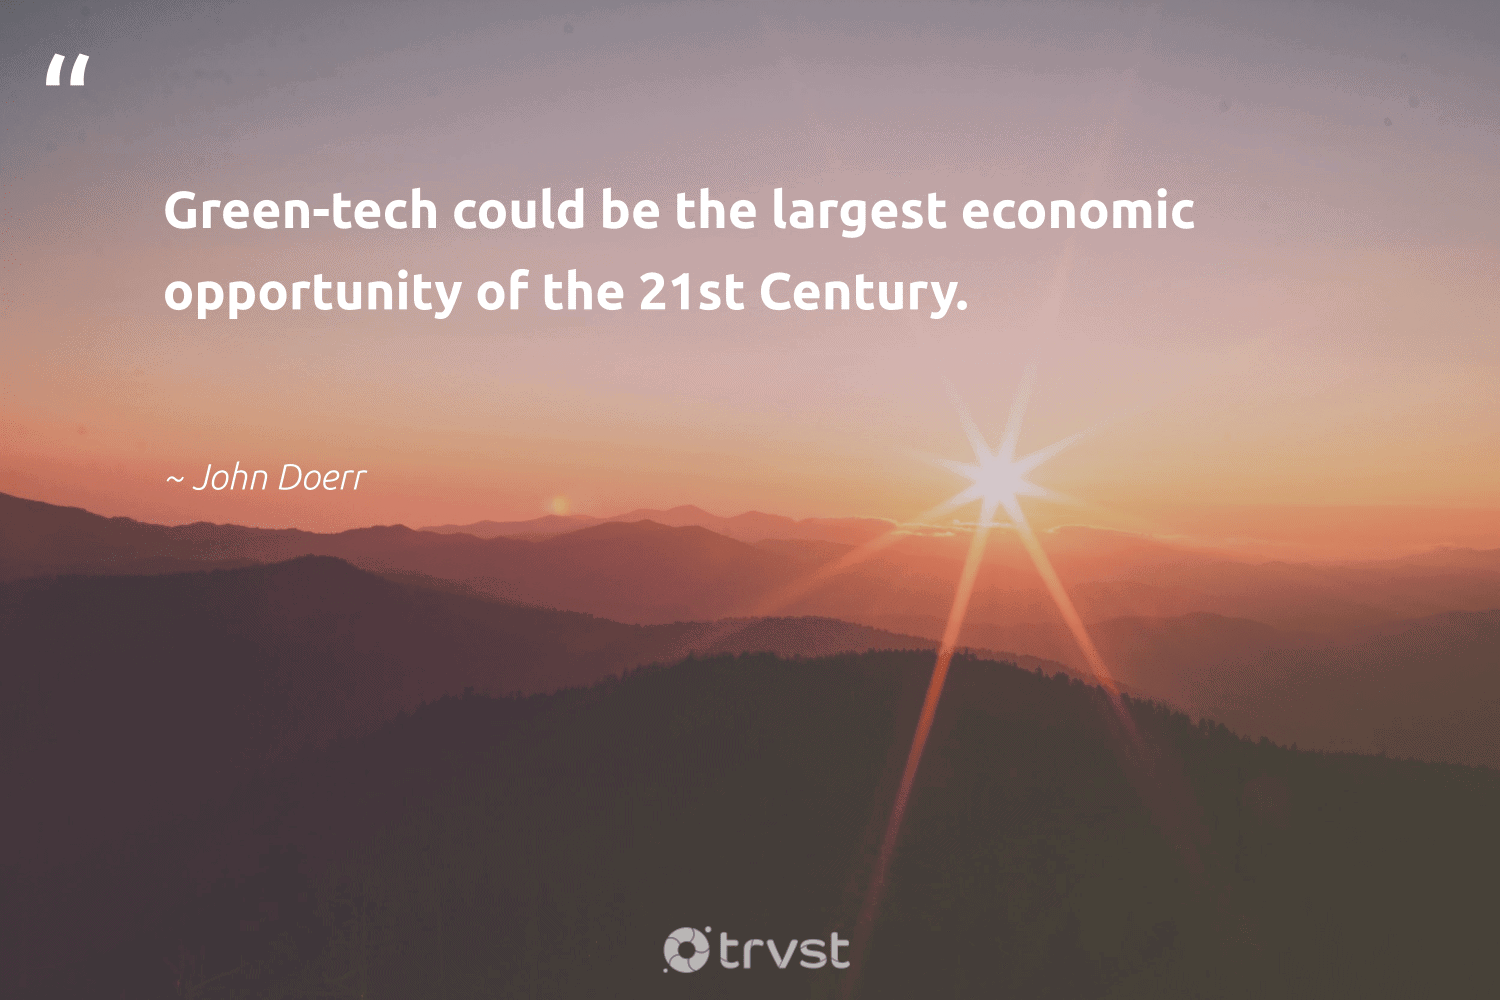 """""""Green-tech could be the largest economic opportunity of the 21st Century.""""  - John Doerr #trvst #quotes #green #sustainableliving #gogreen #getoutside #impact #eco #dogood #noplanetb #socialimpact #climatechange"""